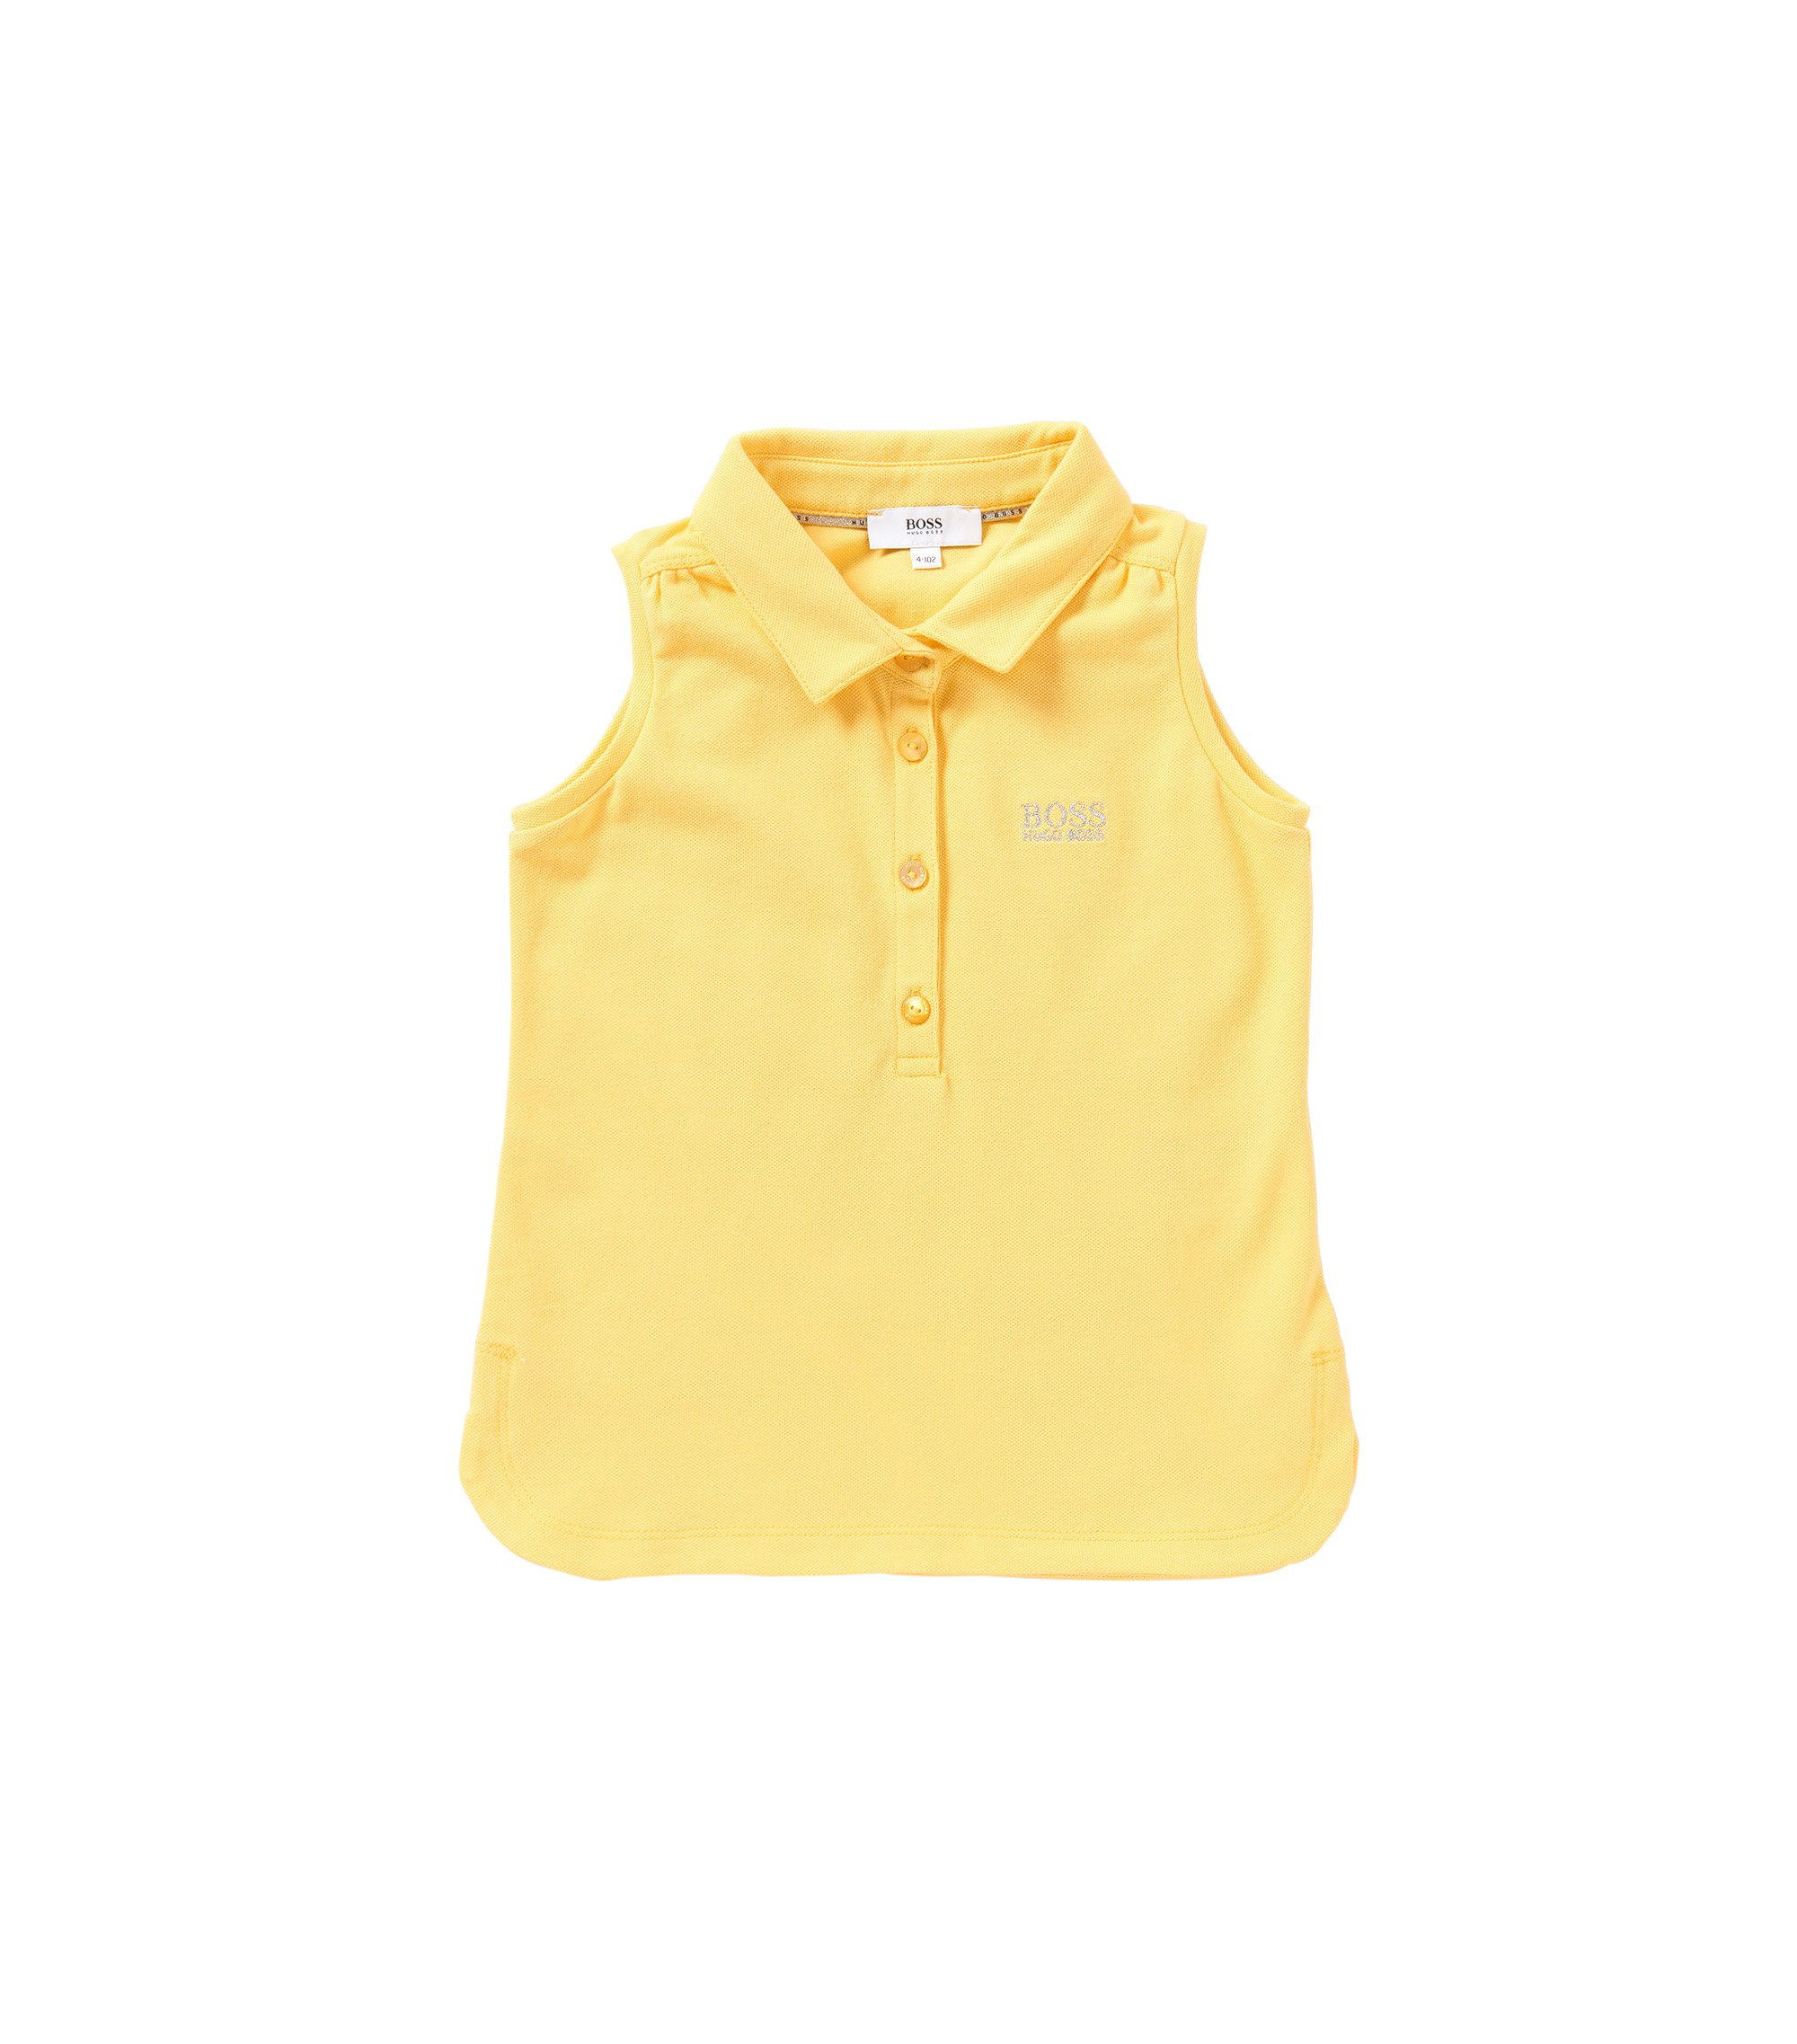 Sleeveless kids' polo shirt in stretch cotton: 'J15344', Yellow